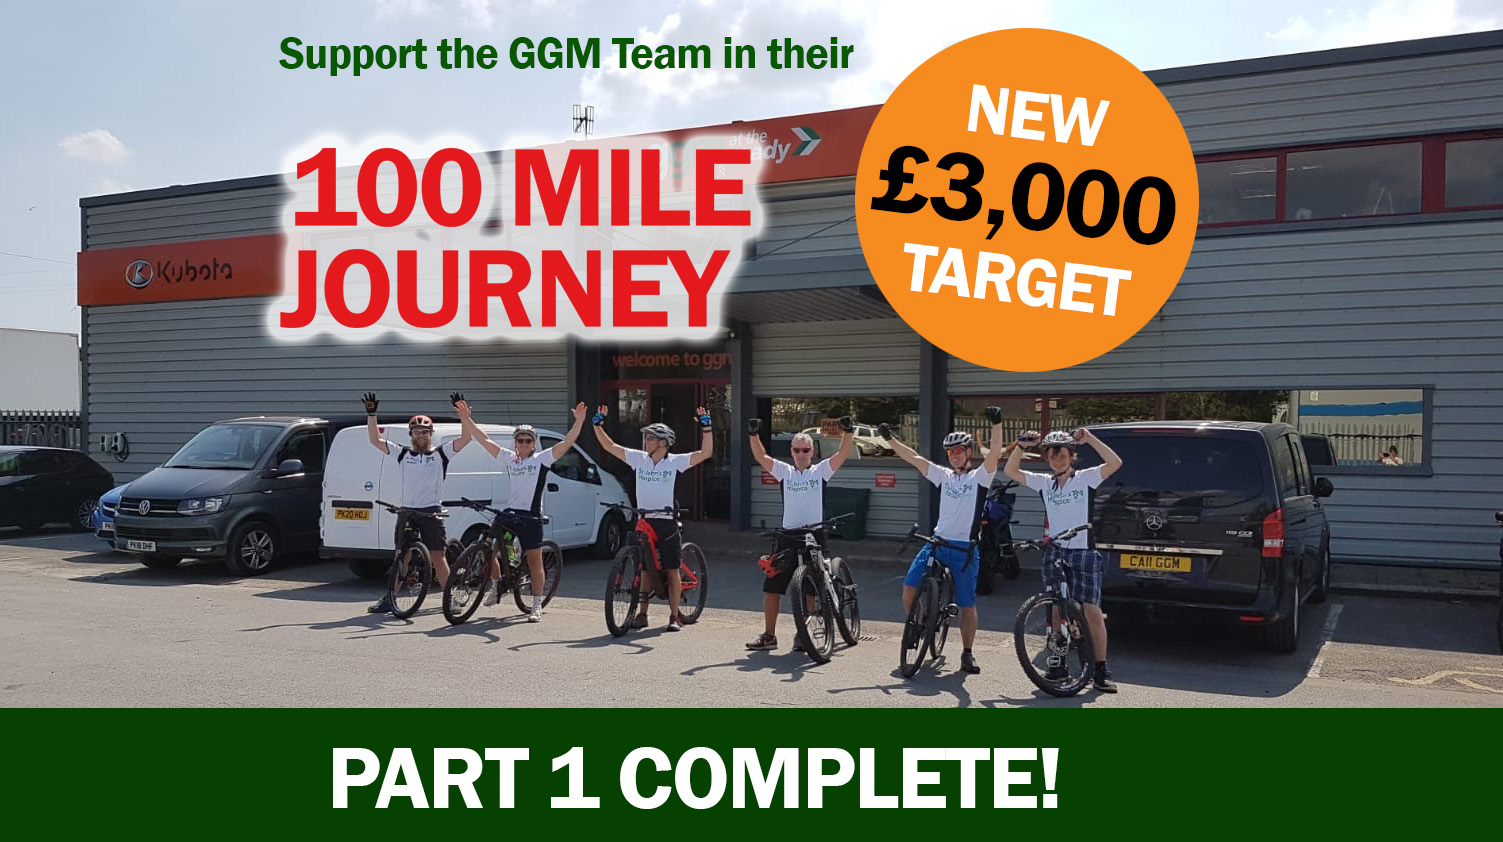 We did it!! The first part of our '100 Mile Journey' Charity Fundraiser was a success!